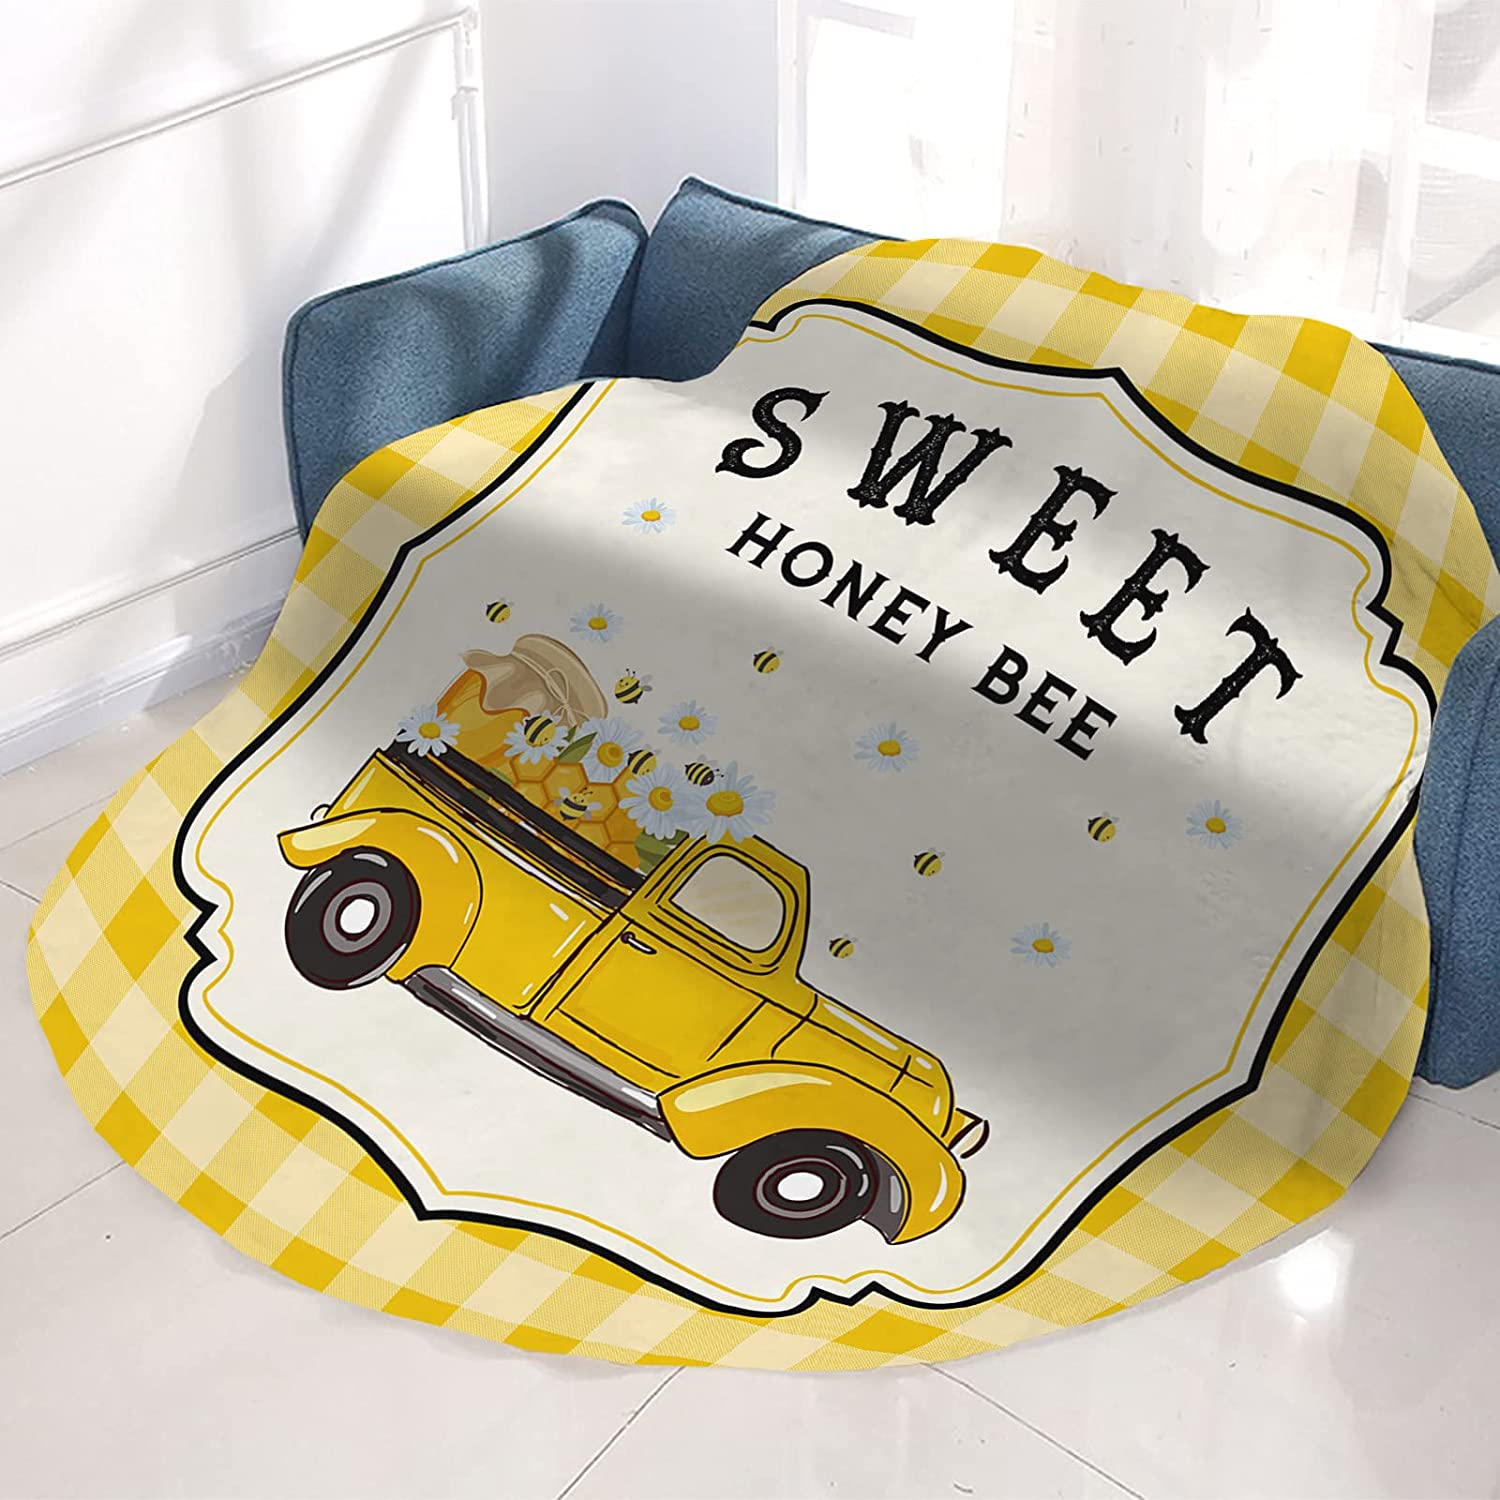 NEW before selling COLORSUM Flannel NEW Round Blanket Summer Bees Sweet Hone with Truck